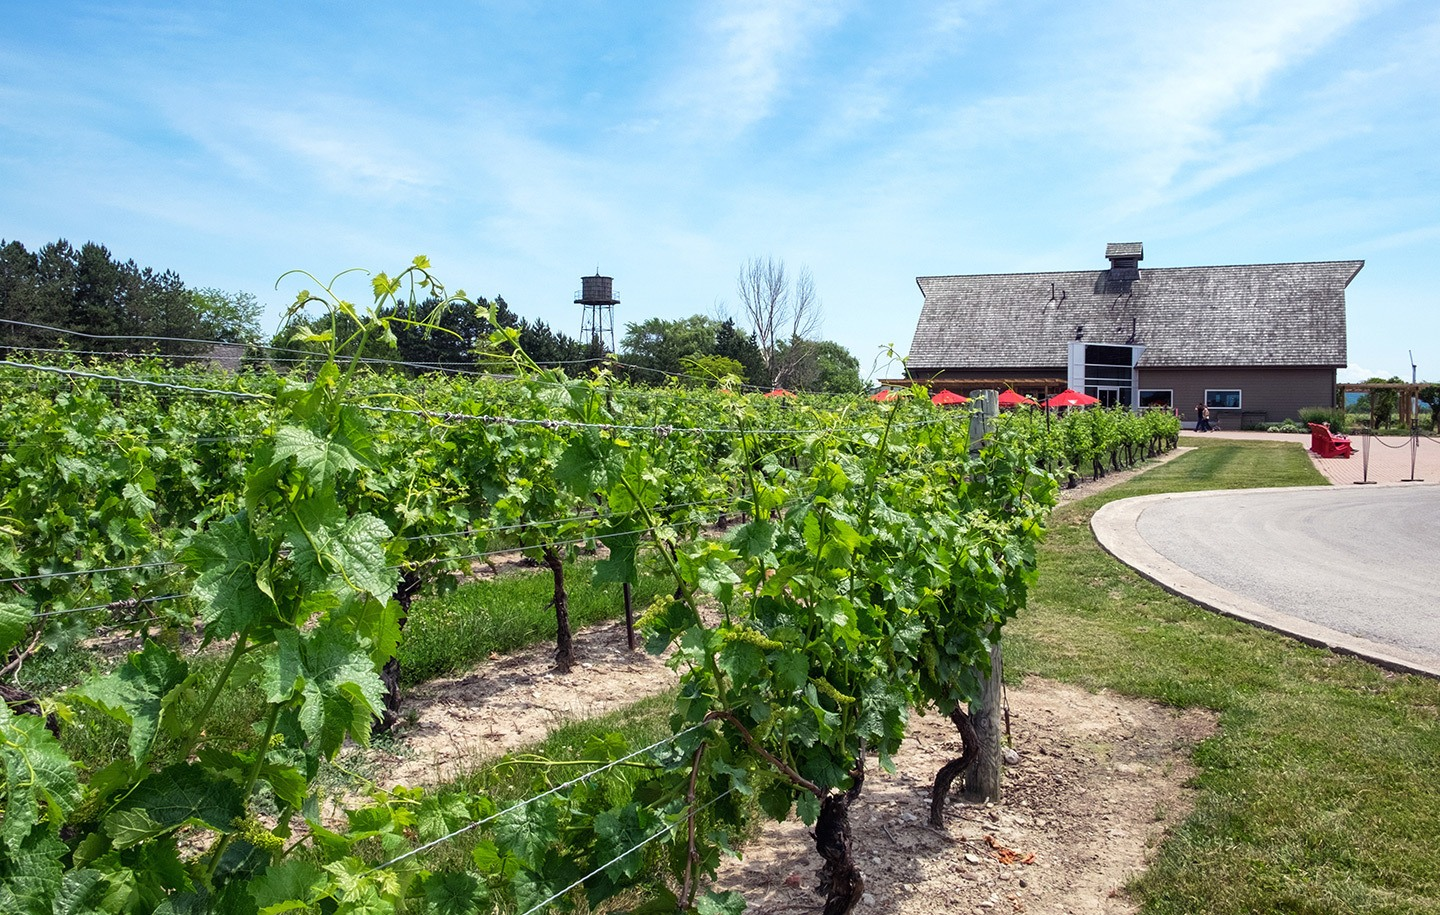 Inniskillin winery in Niagara-on-the-Lake, Ontario, Canada